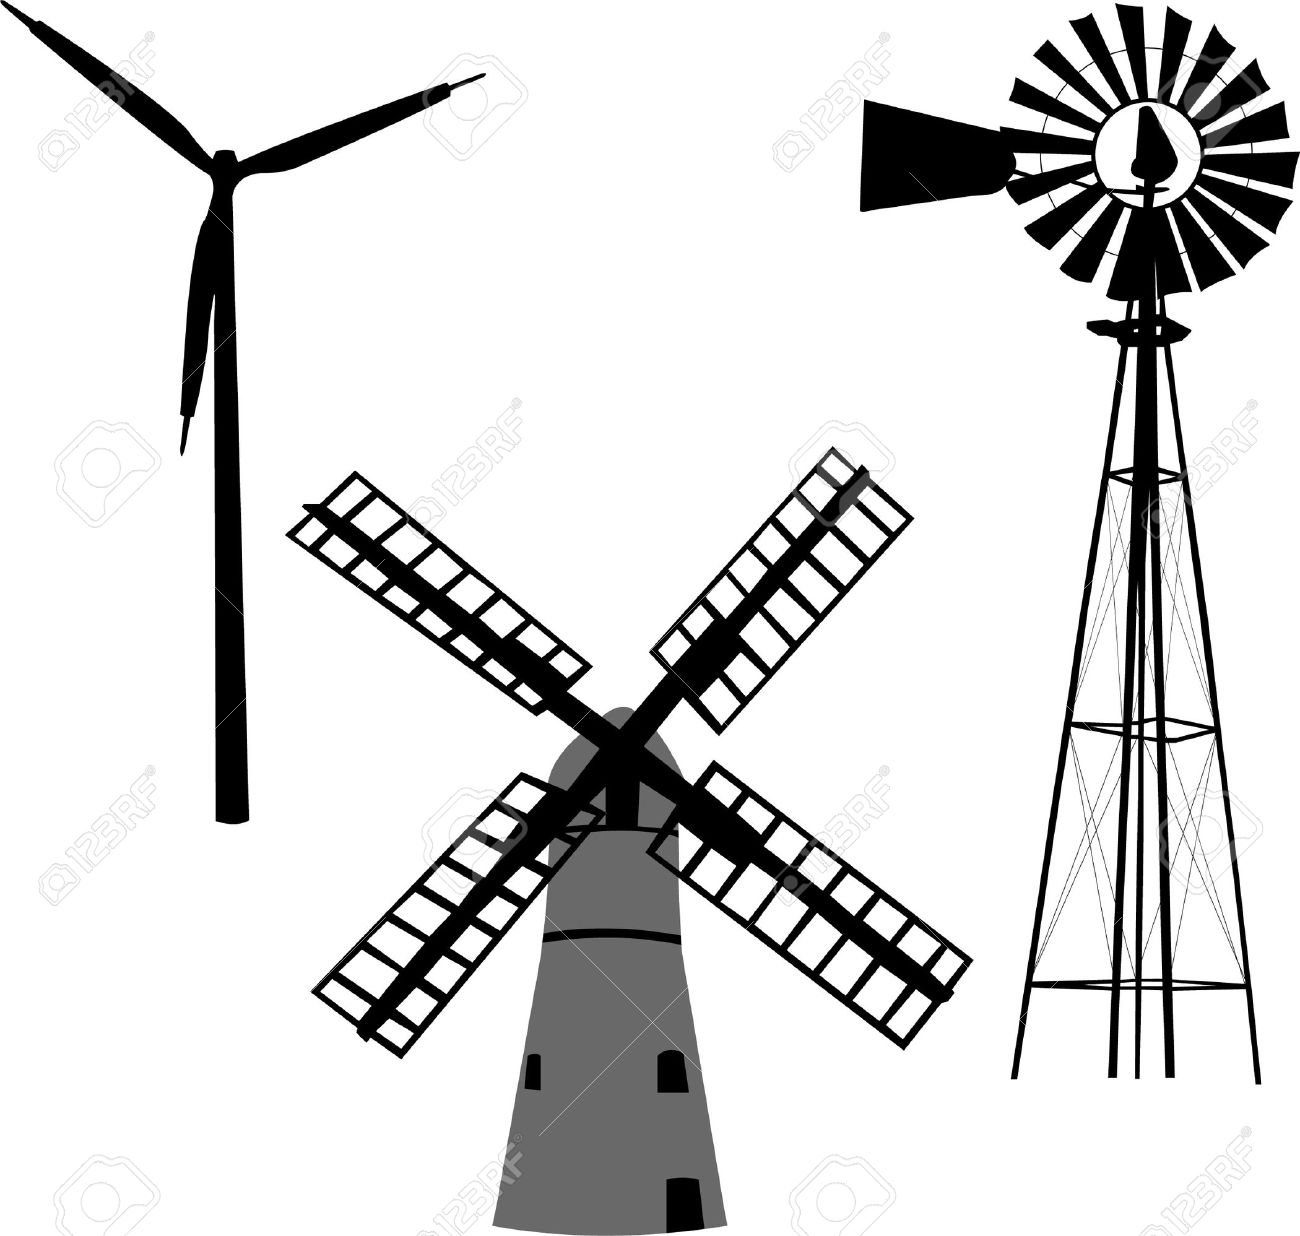 silhouette of windmill royalty free cliparts vectors and stock rh 123rf com windmill vector download windmill vector png